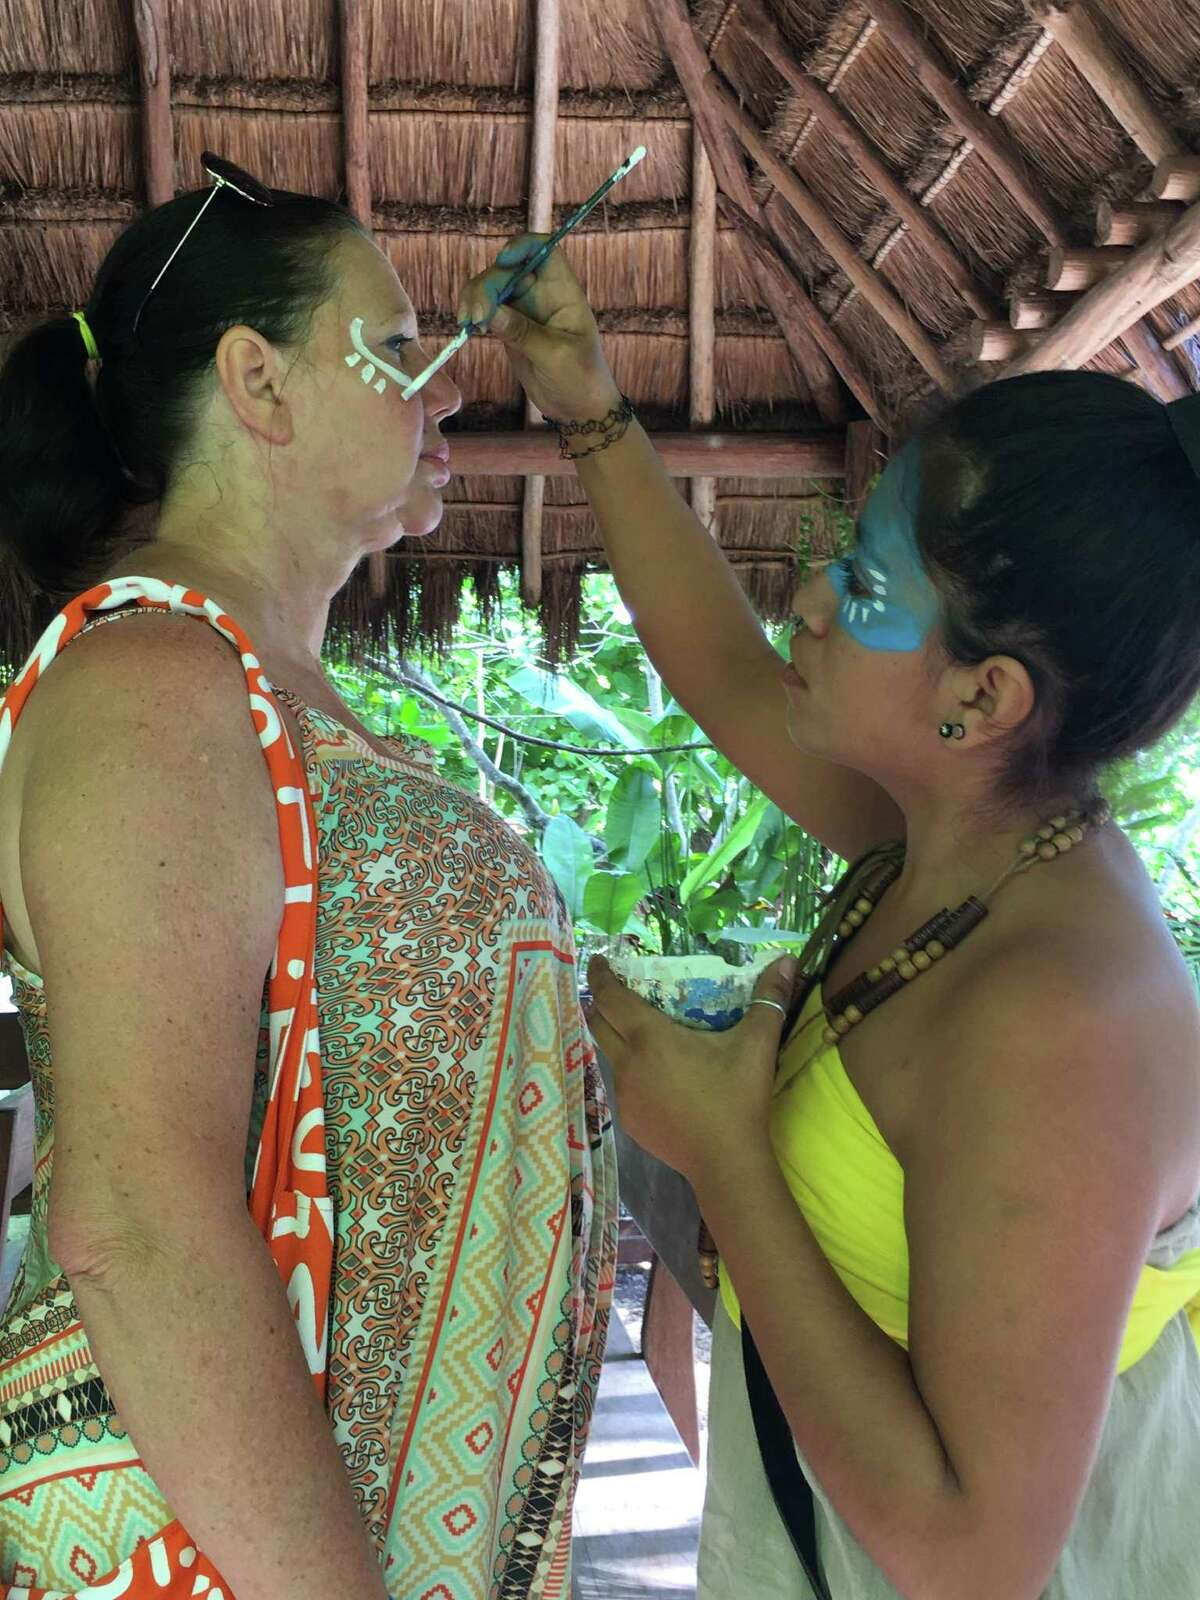 Before entering the recreated ancient Mayan village, guests have their faces painted with natural pigments.